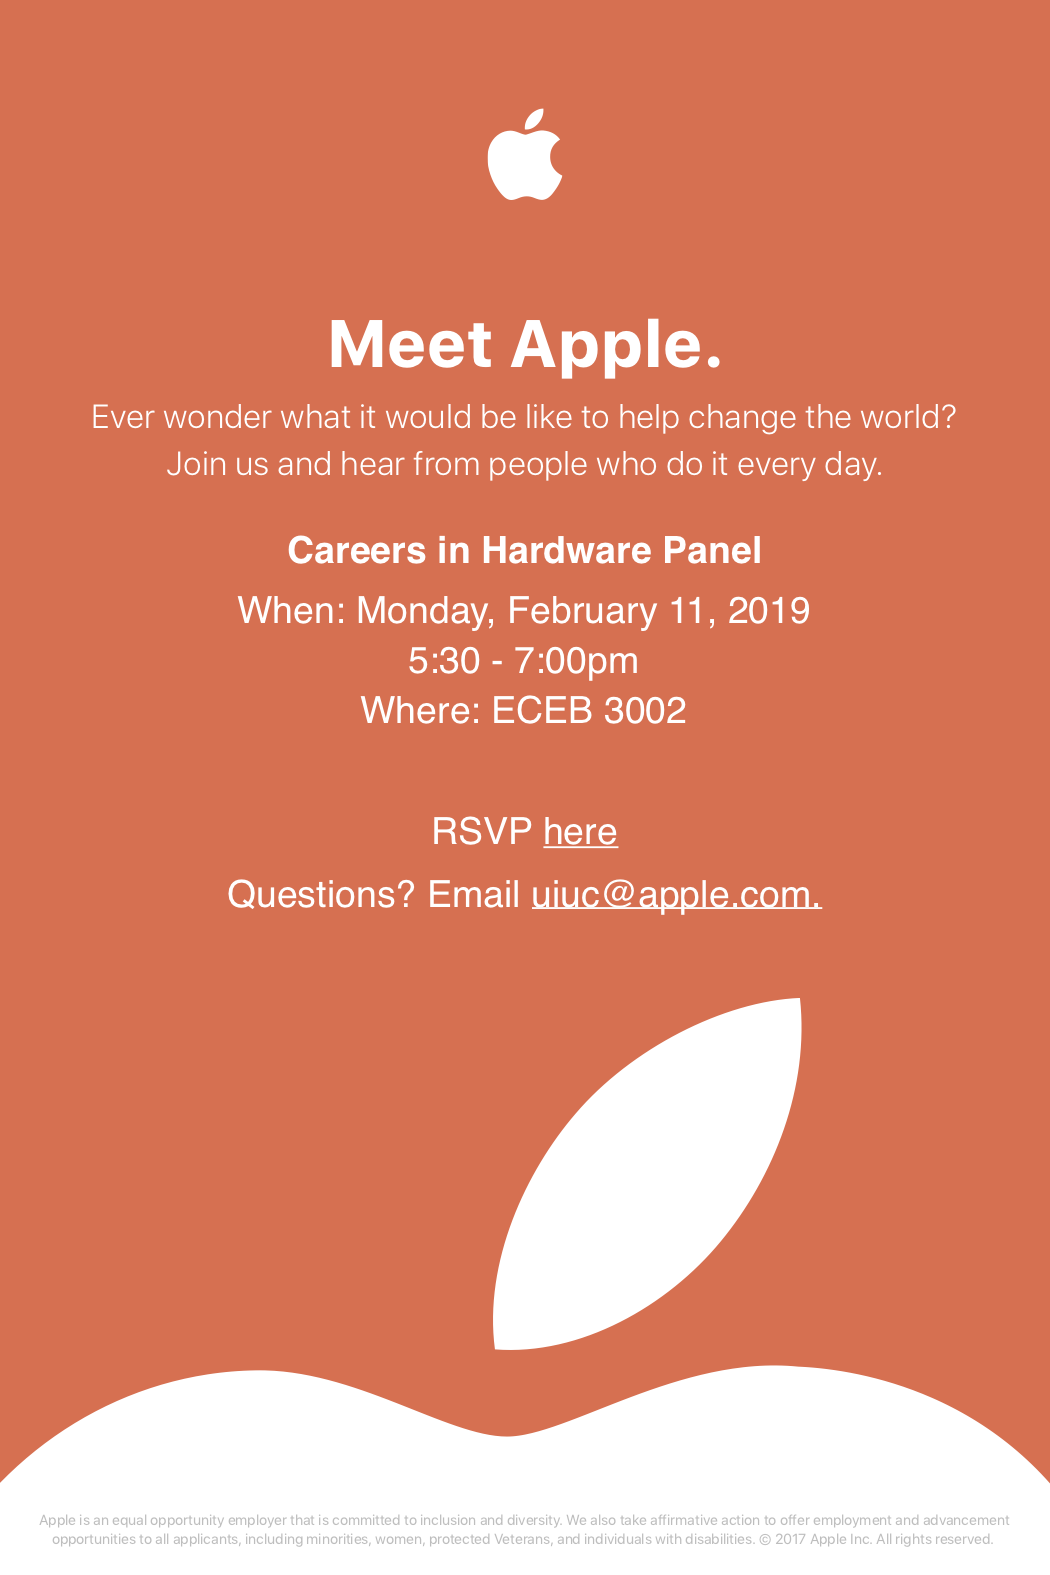 UIUC Careers in HW Panel Flyer - Spring 2019.png